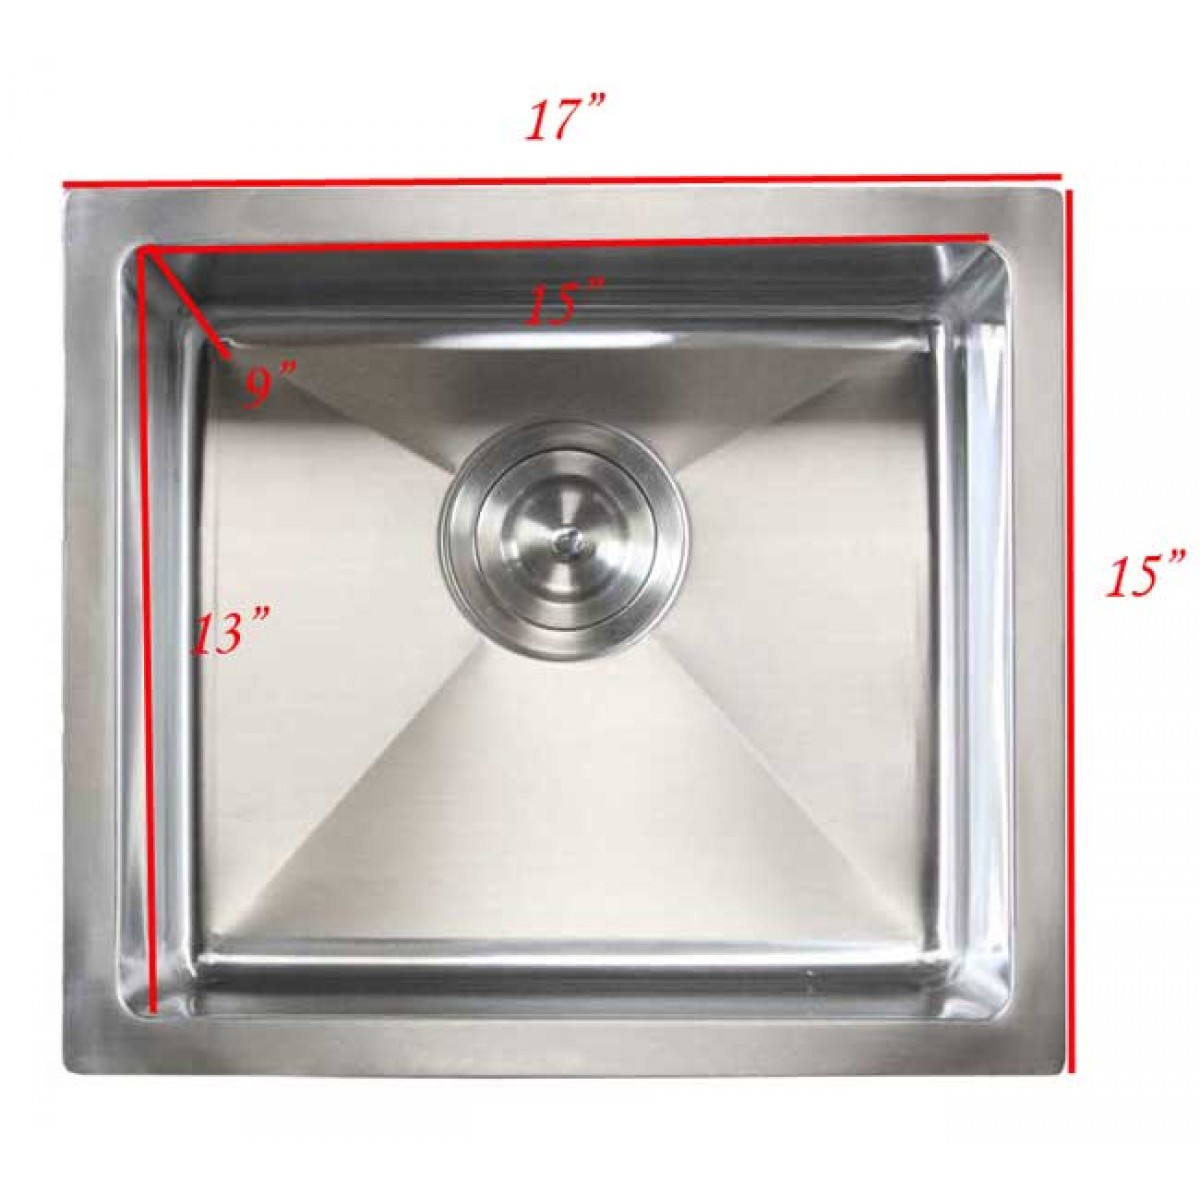 Ariel 17 Inch Stainless Steel Undermount Single Bowl